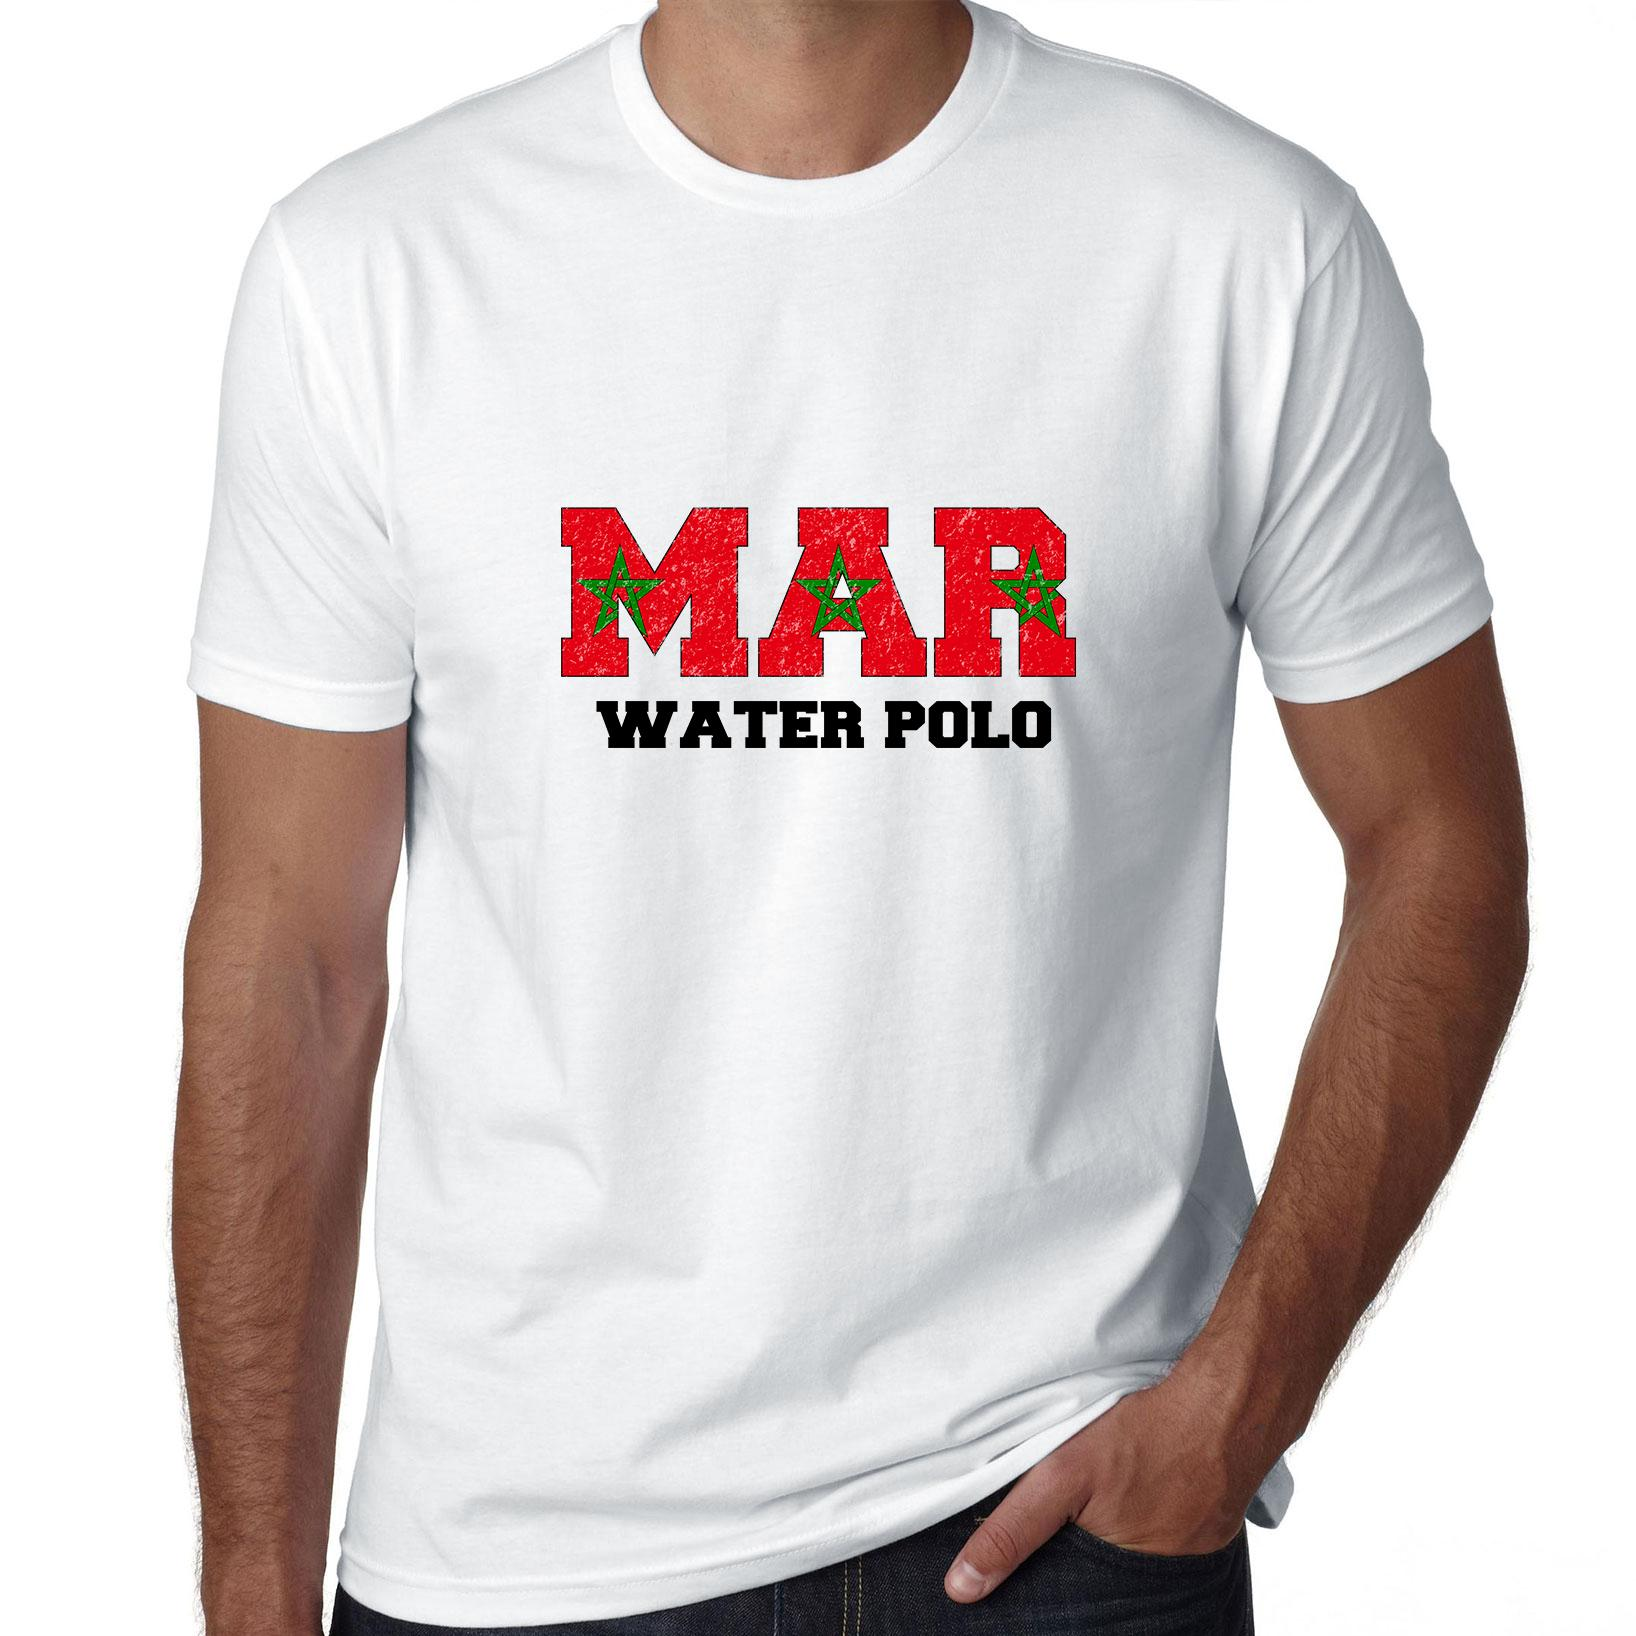 Morocco Waterpolo - Olympic Games - Rio - Flag Men's T-Shirt